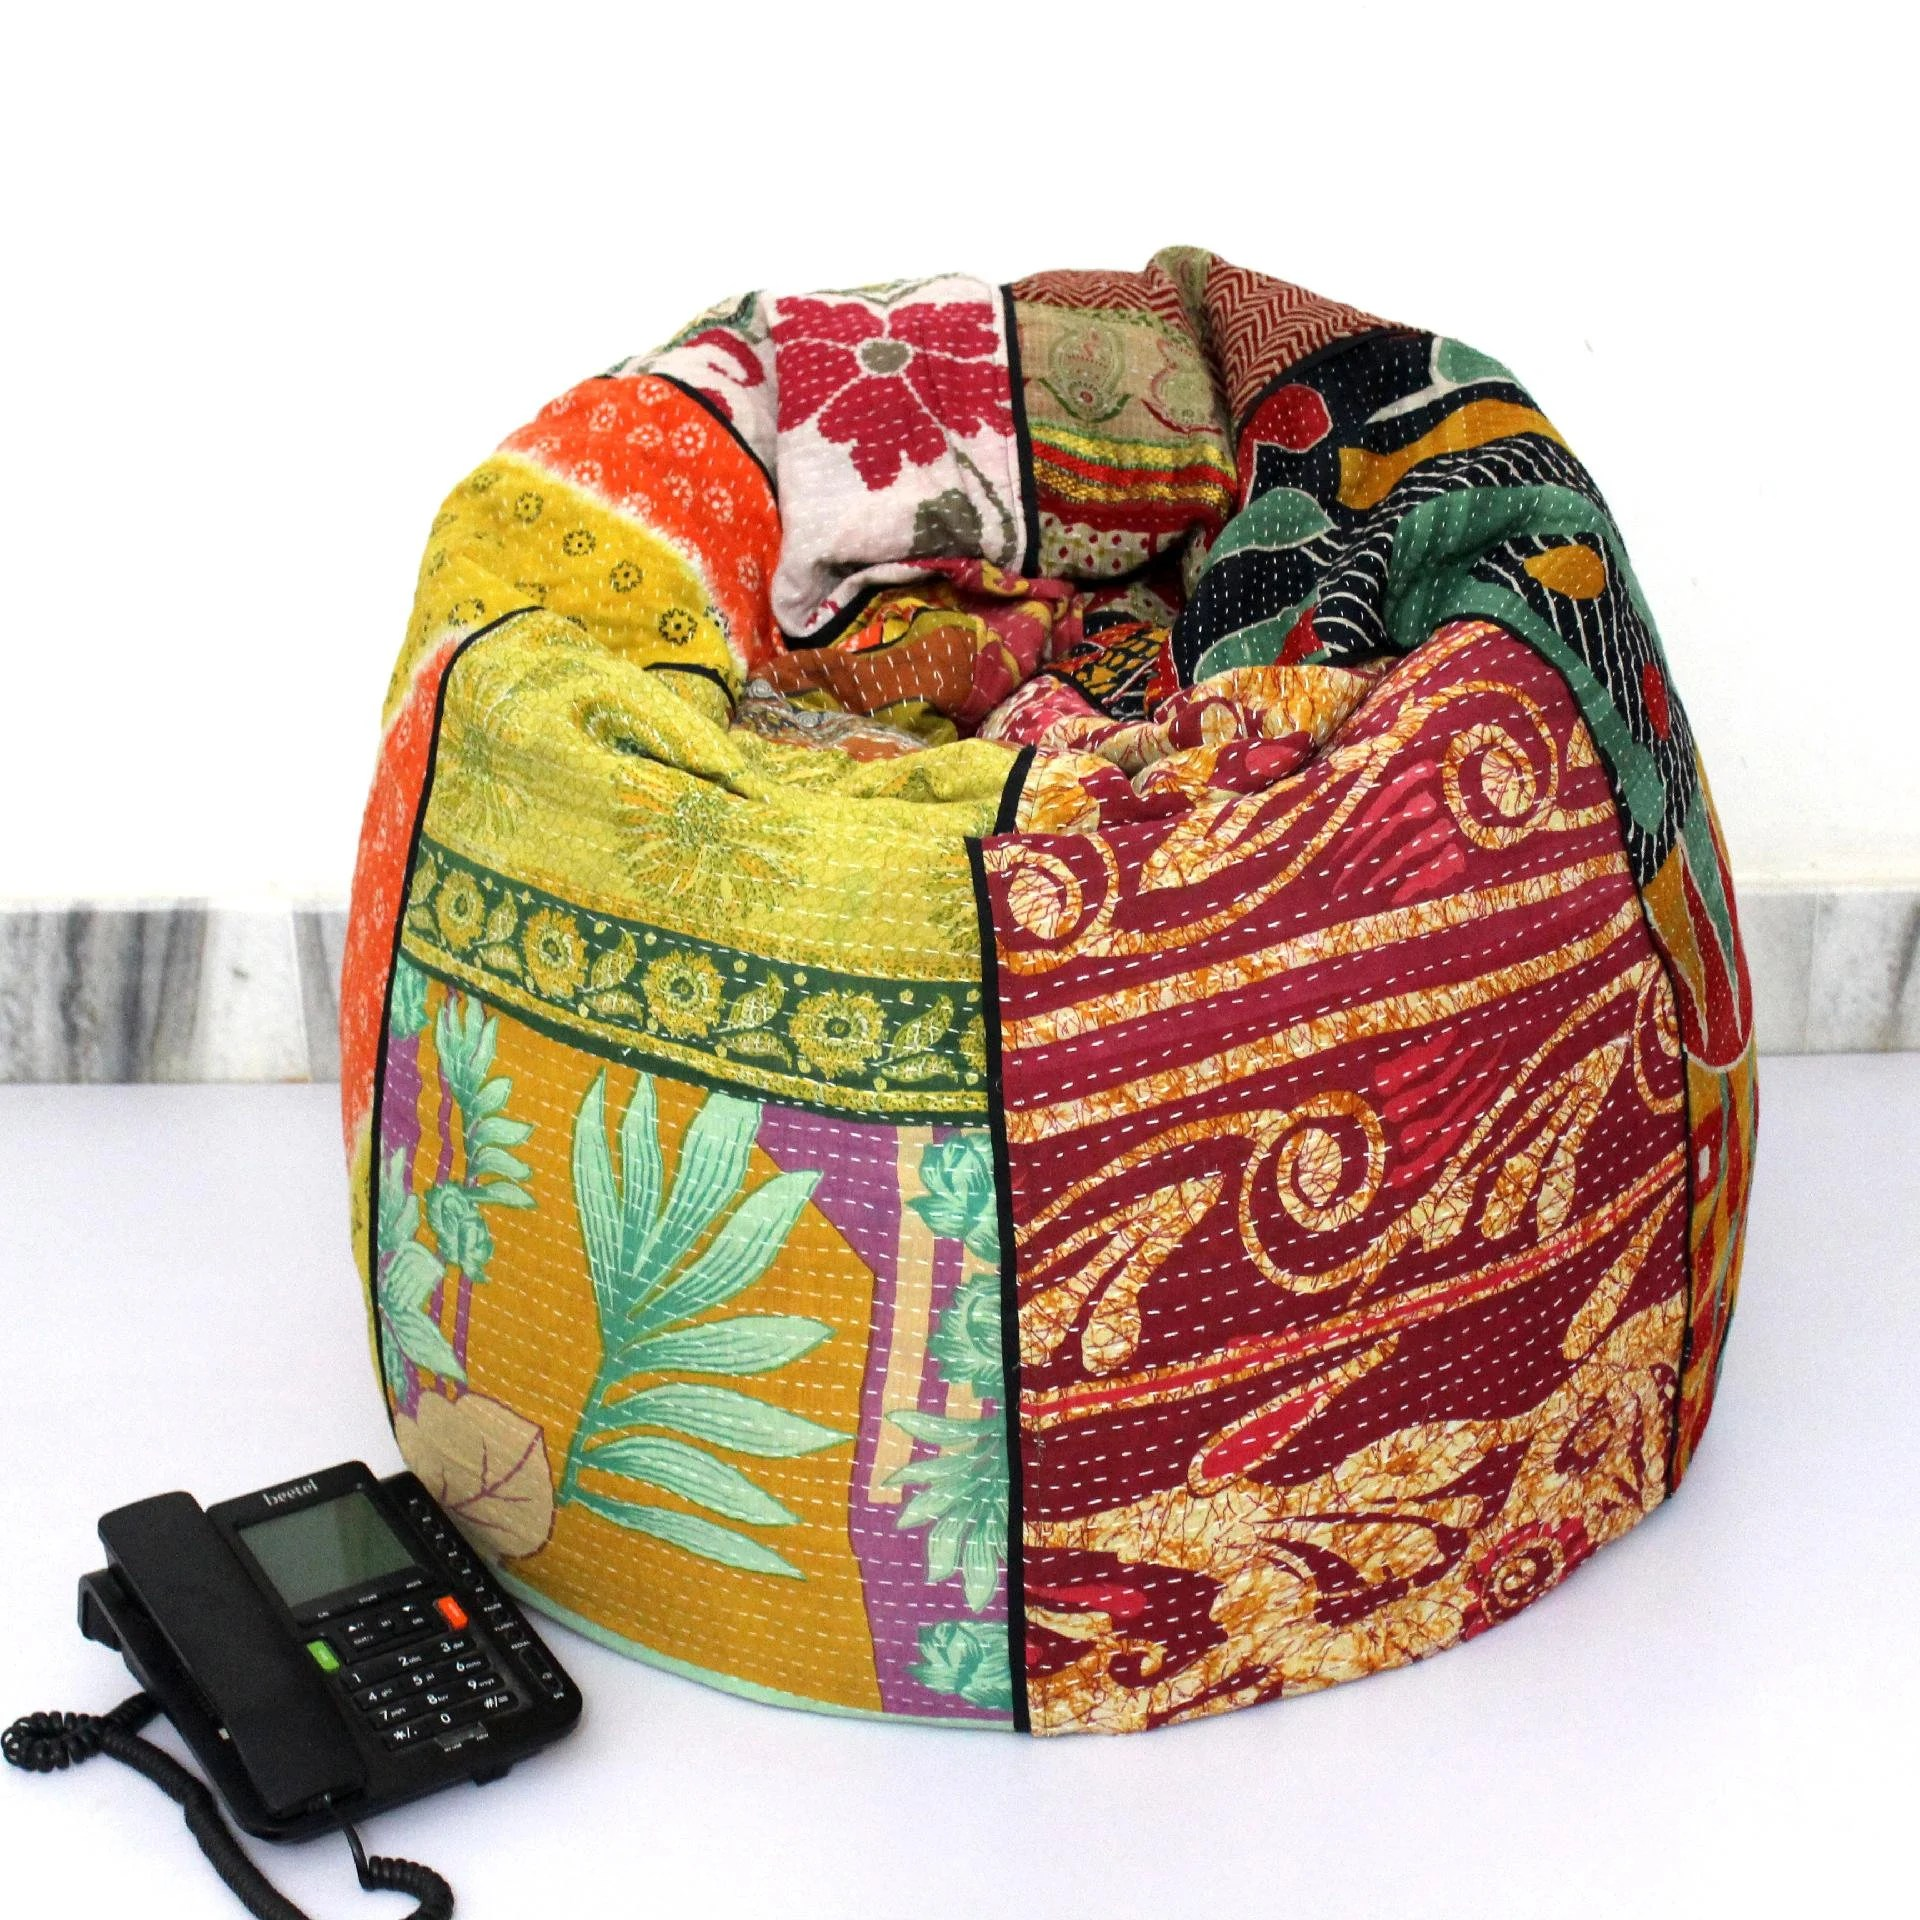 Where Can I Buy A Bean Bag Chair Handmade Quilted Cotton Floral Bohemian Bean Bag Chair Home